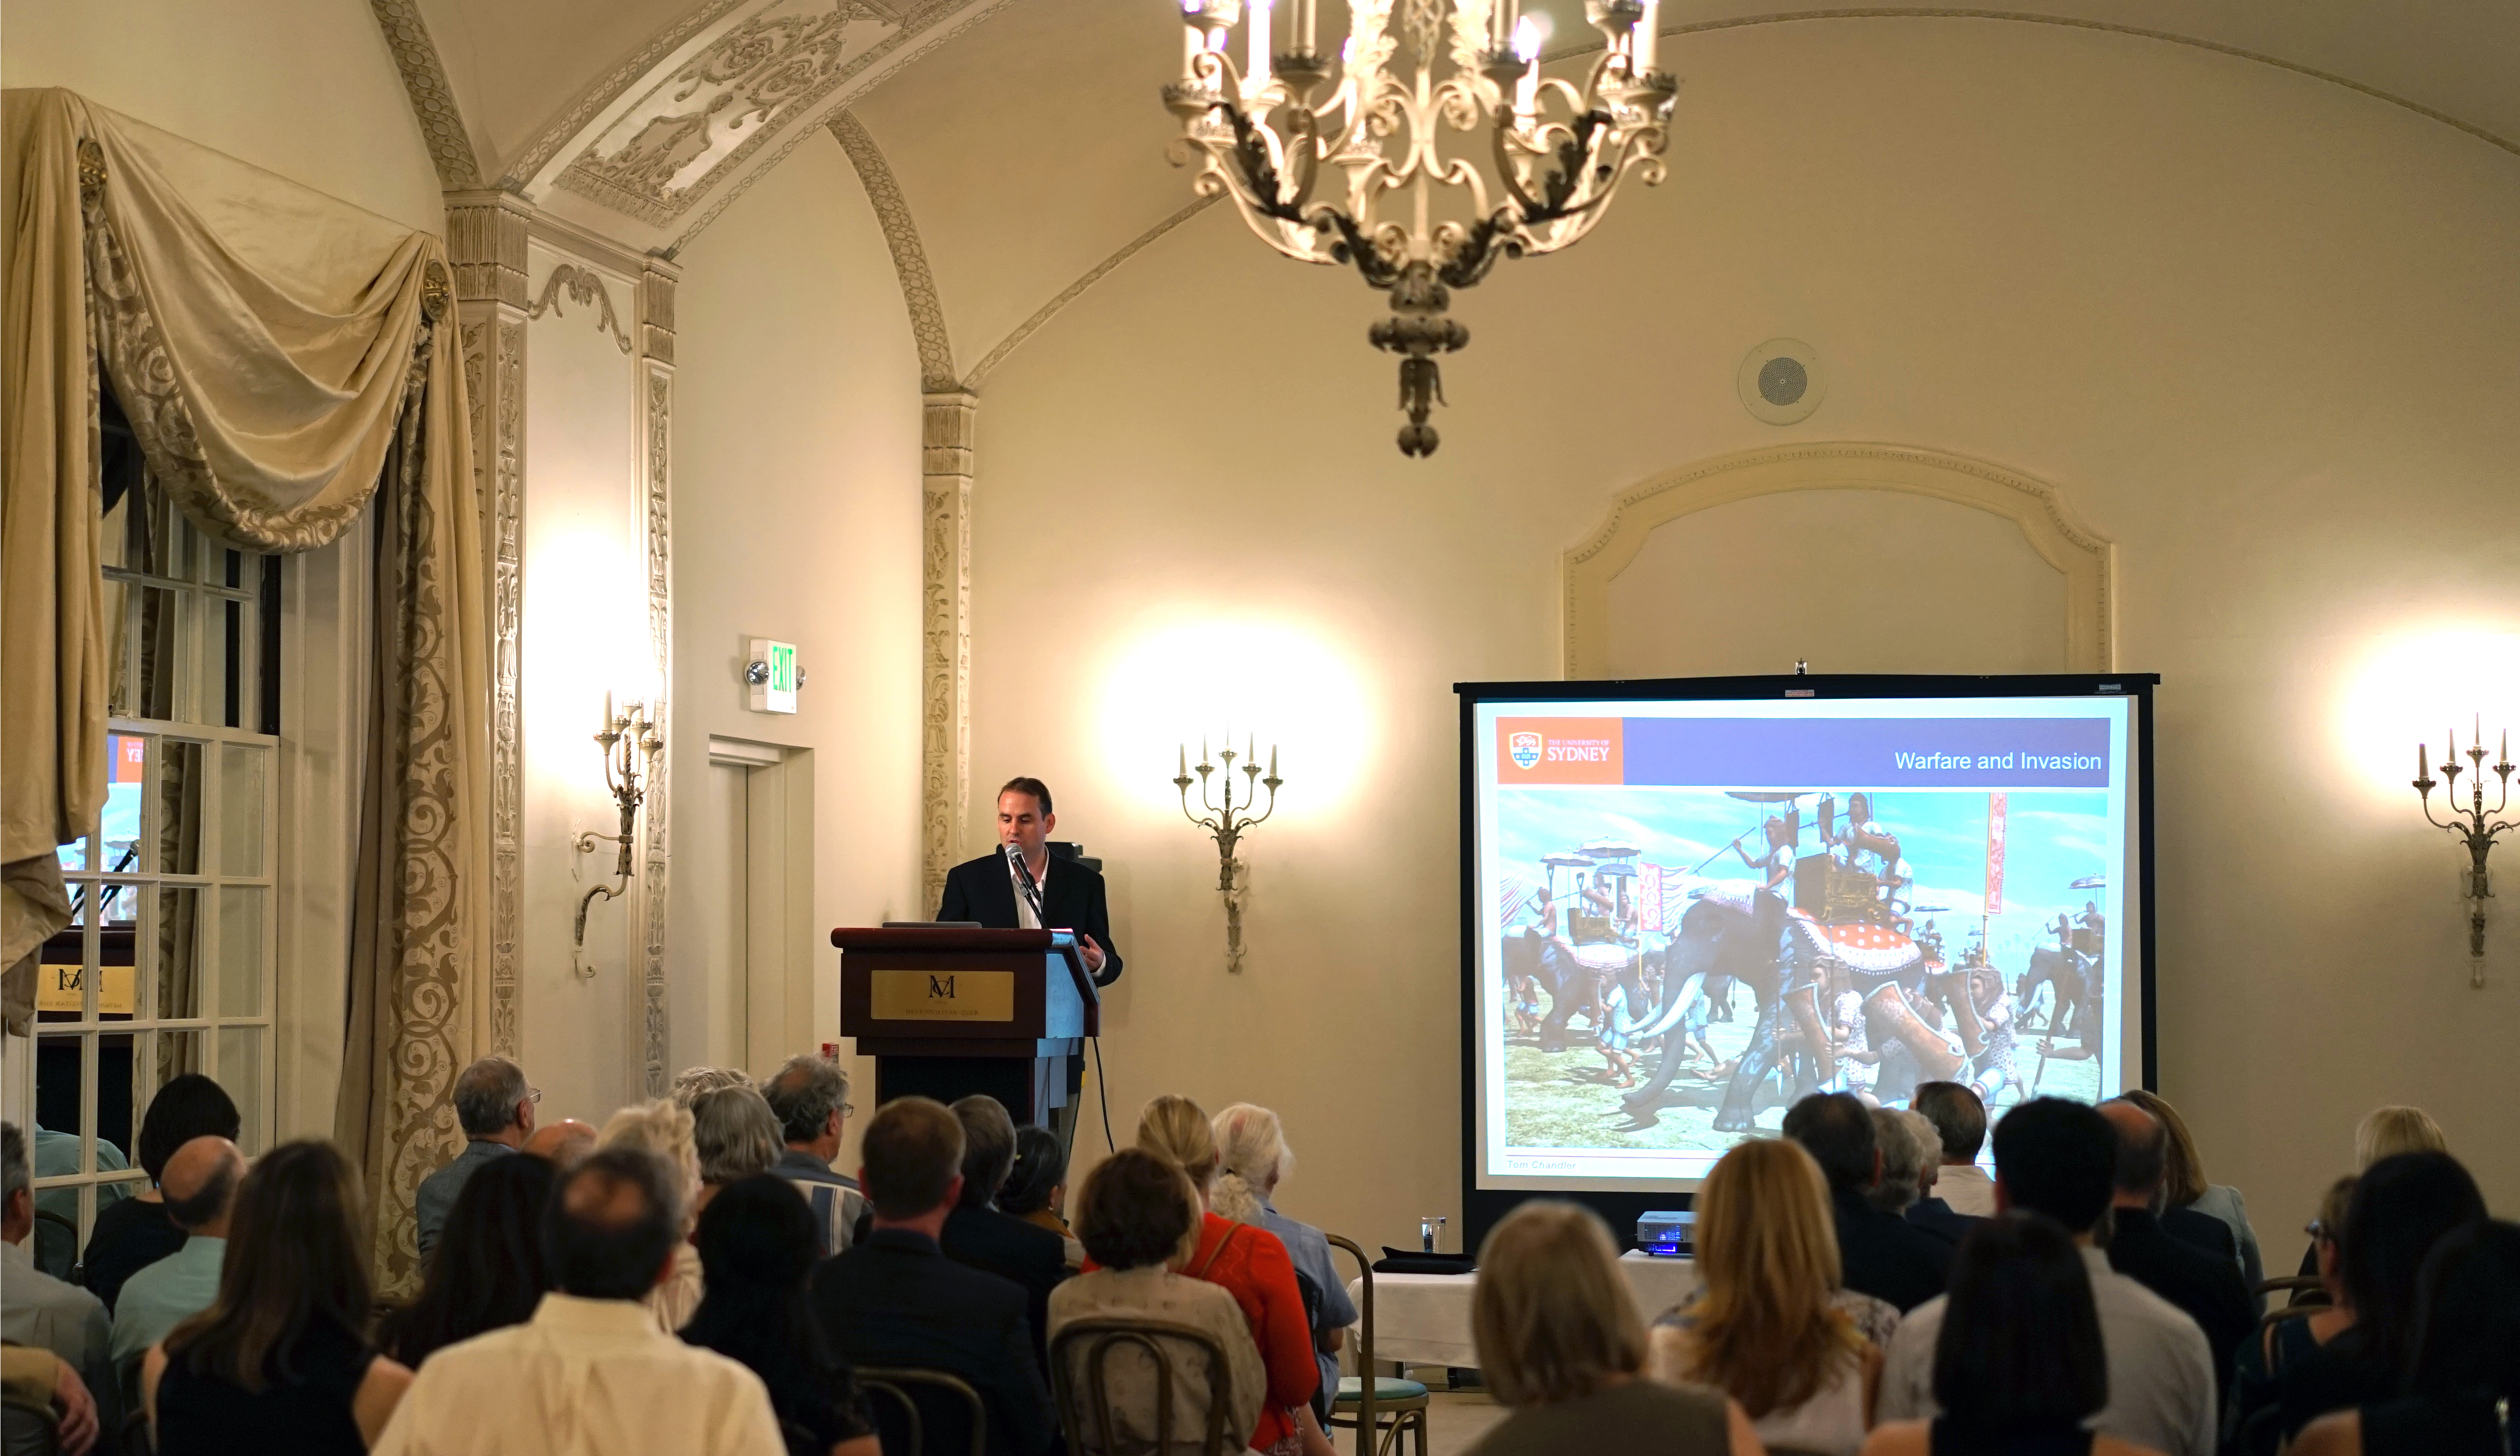 May 1, 2014: Global Heritage Fund Presentation by Dr. Damian Evans, University of Sydney